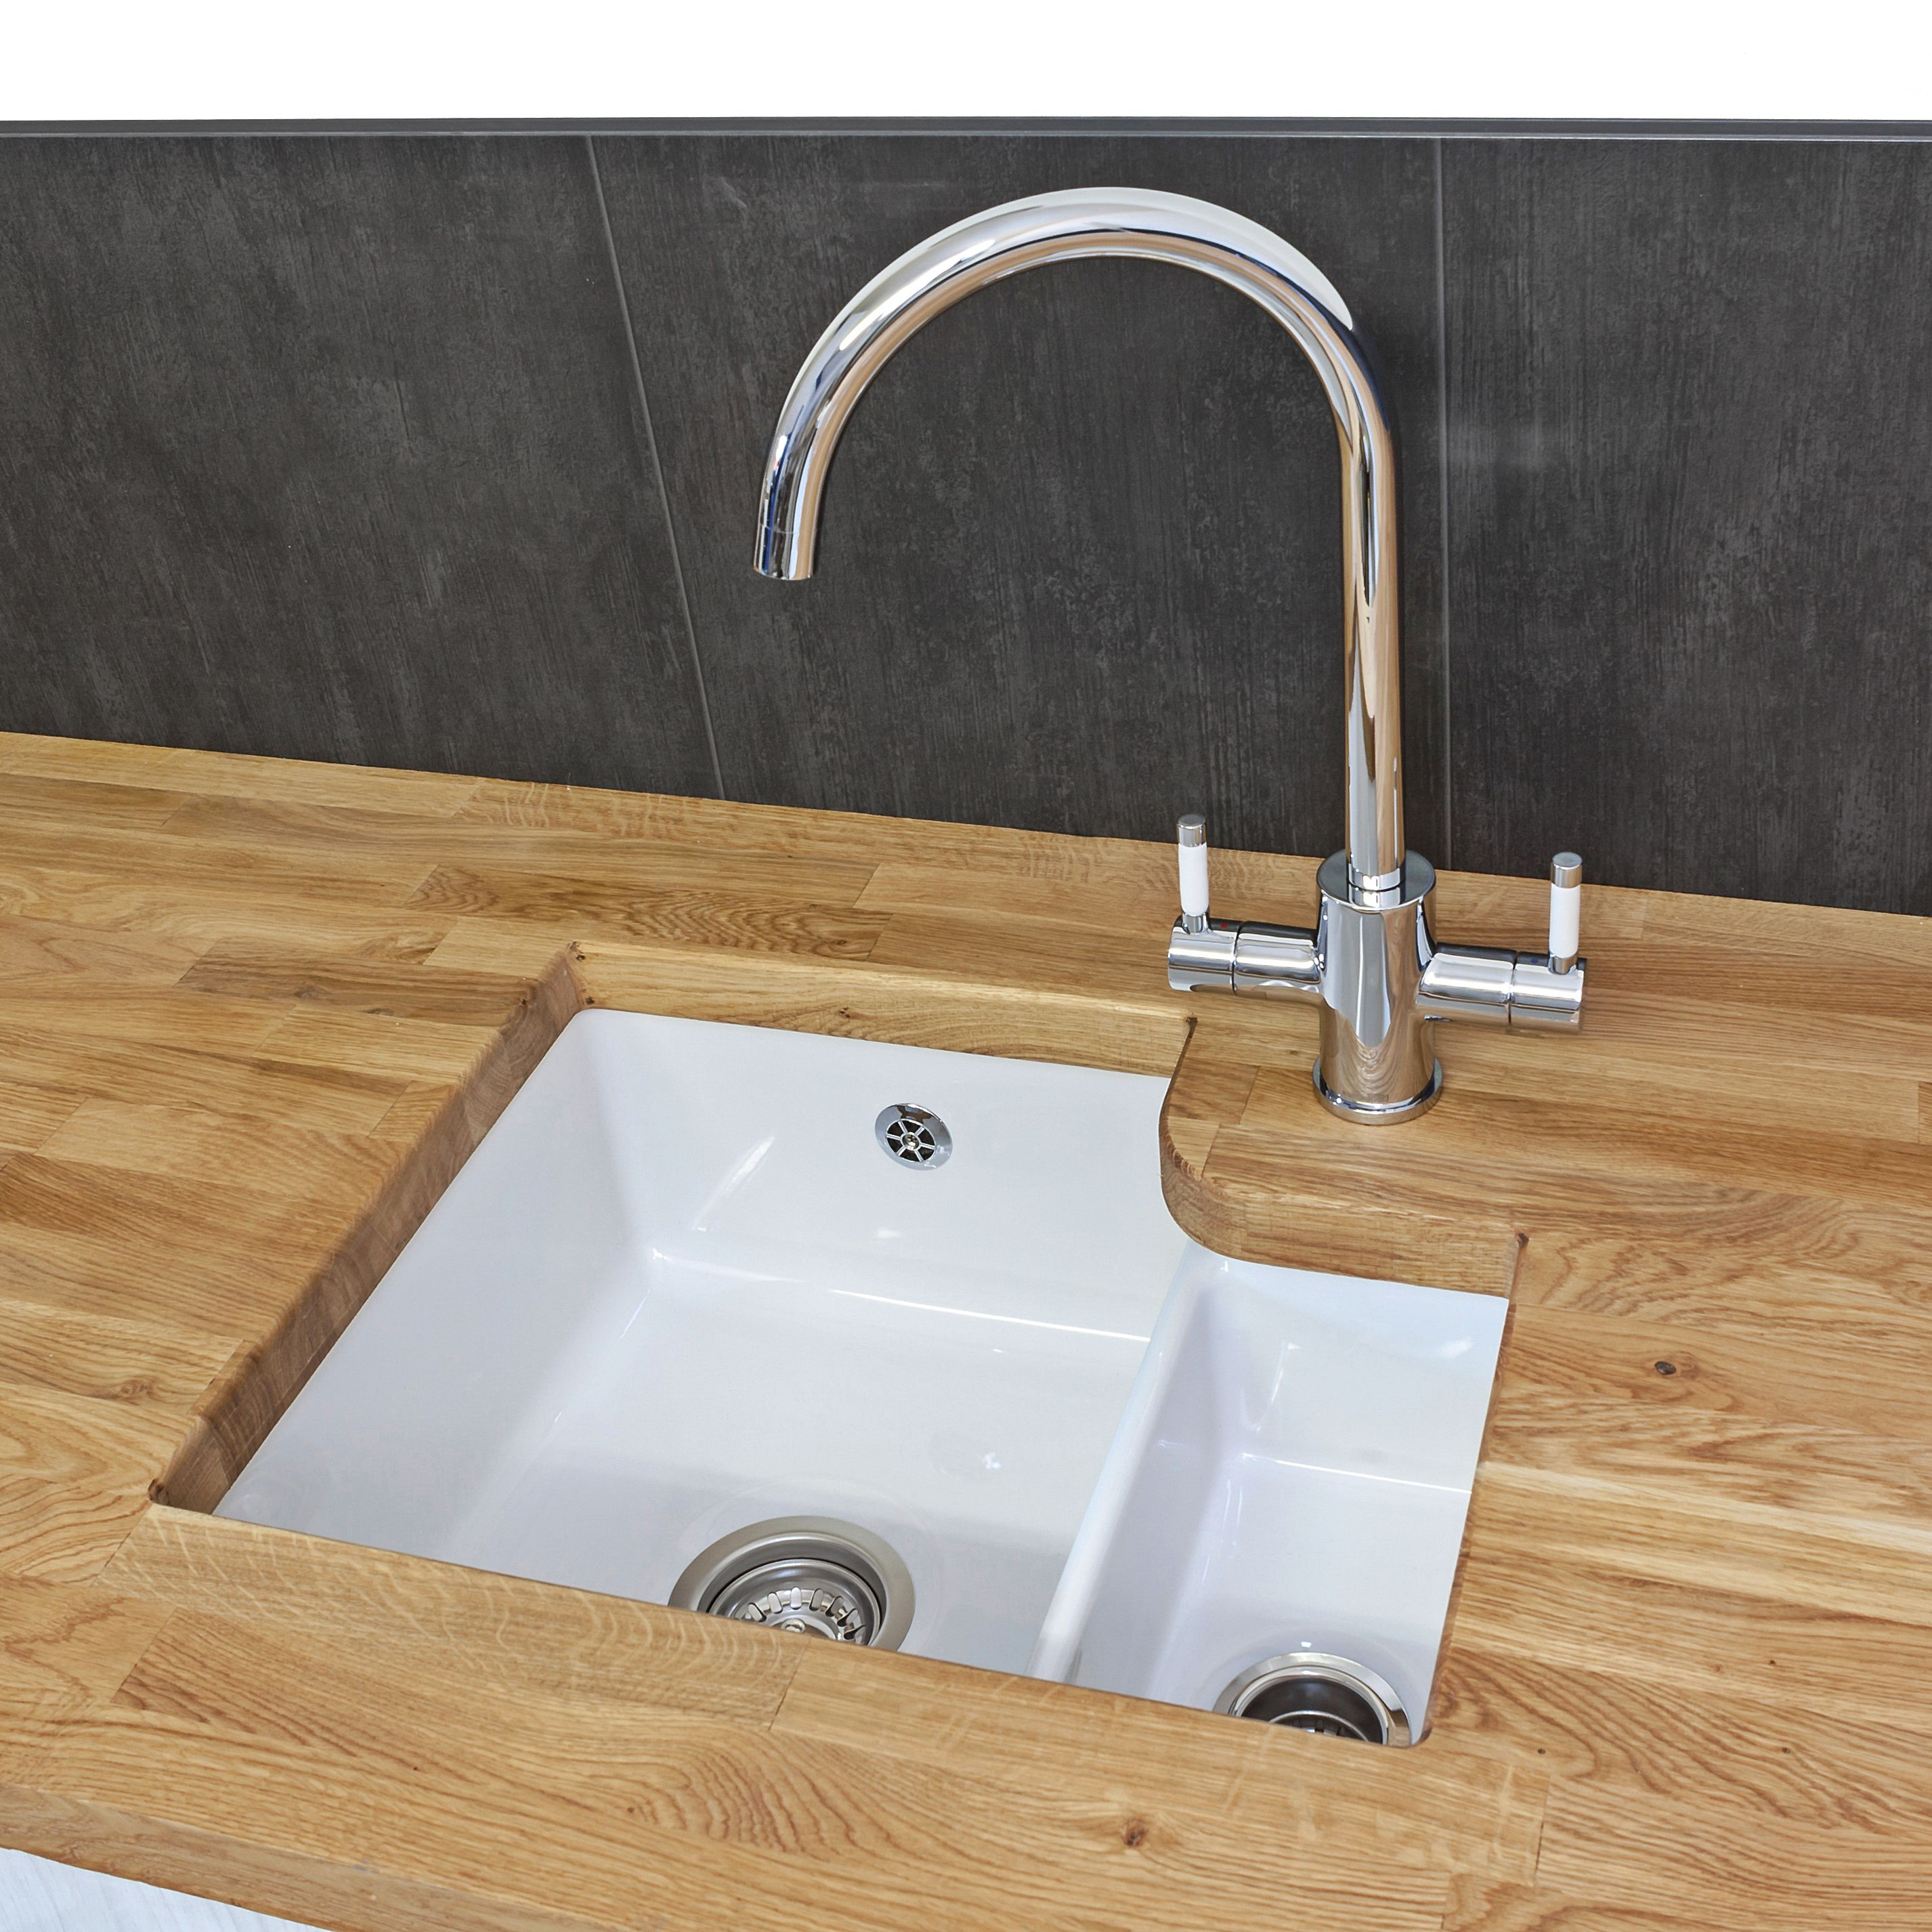 Reginox Tuscany Undermount White Ceramic 1 5 Bowl Kitchen Sink With Waste Included In 2020 Sink Ceramic Sink Bowl Sink